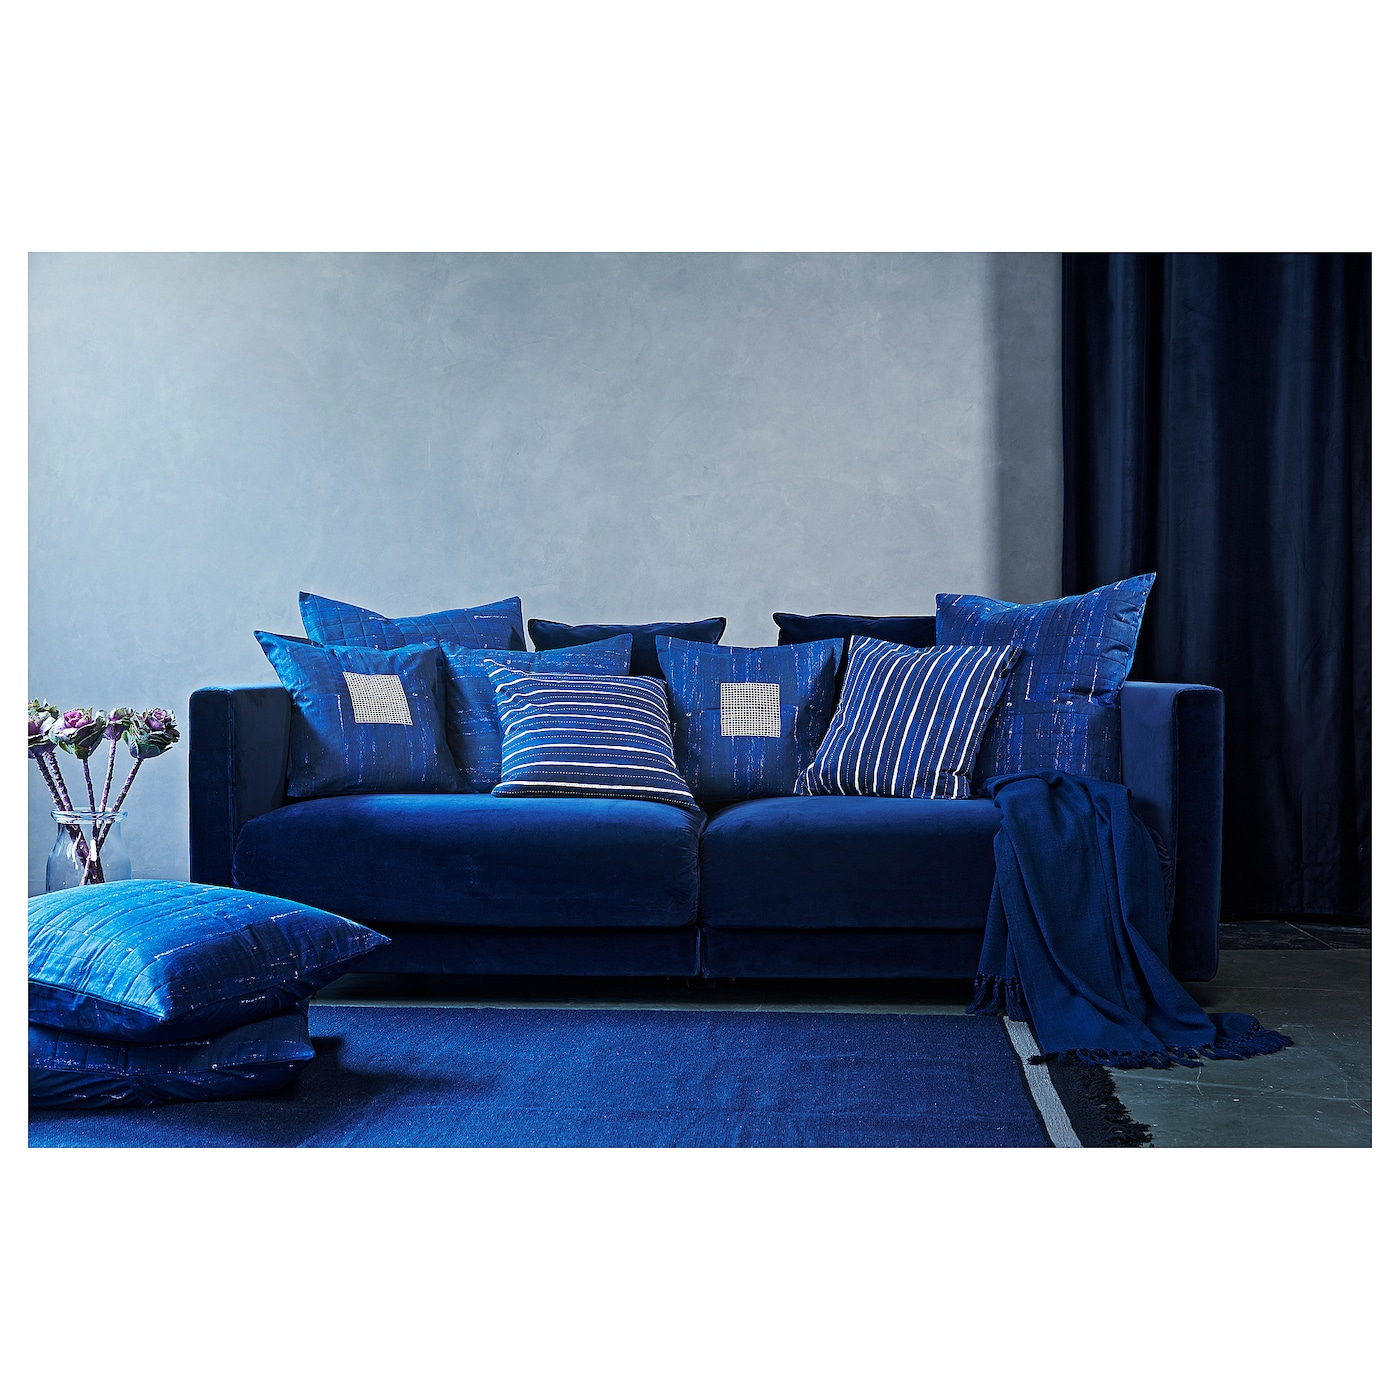 inneh llsrik housse de coussin fait main bleu 50x50 cm ikea. Black Bedroom Furniture Sets. Home Design Ideas